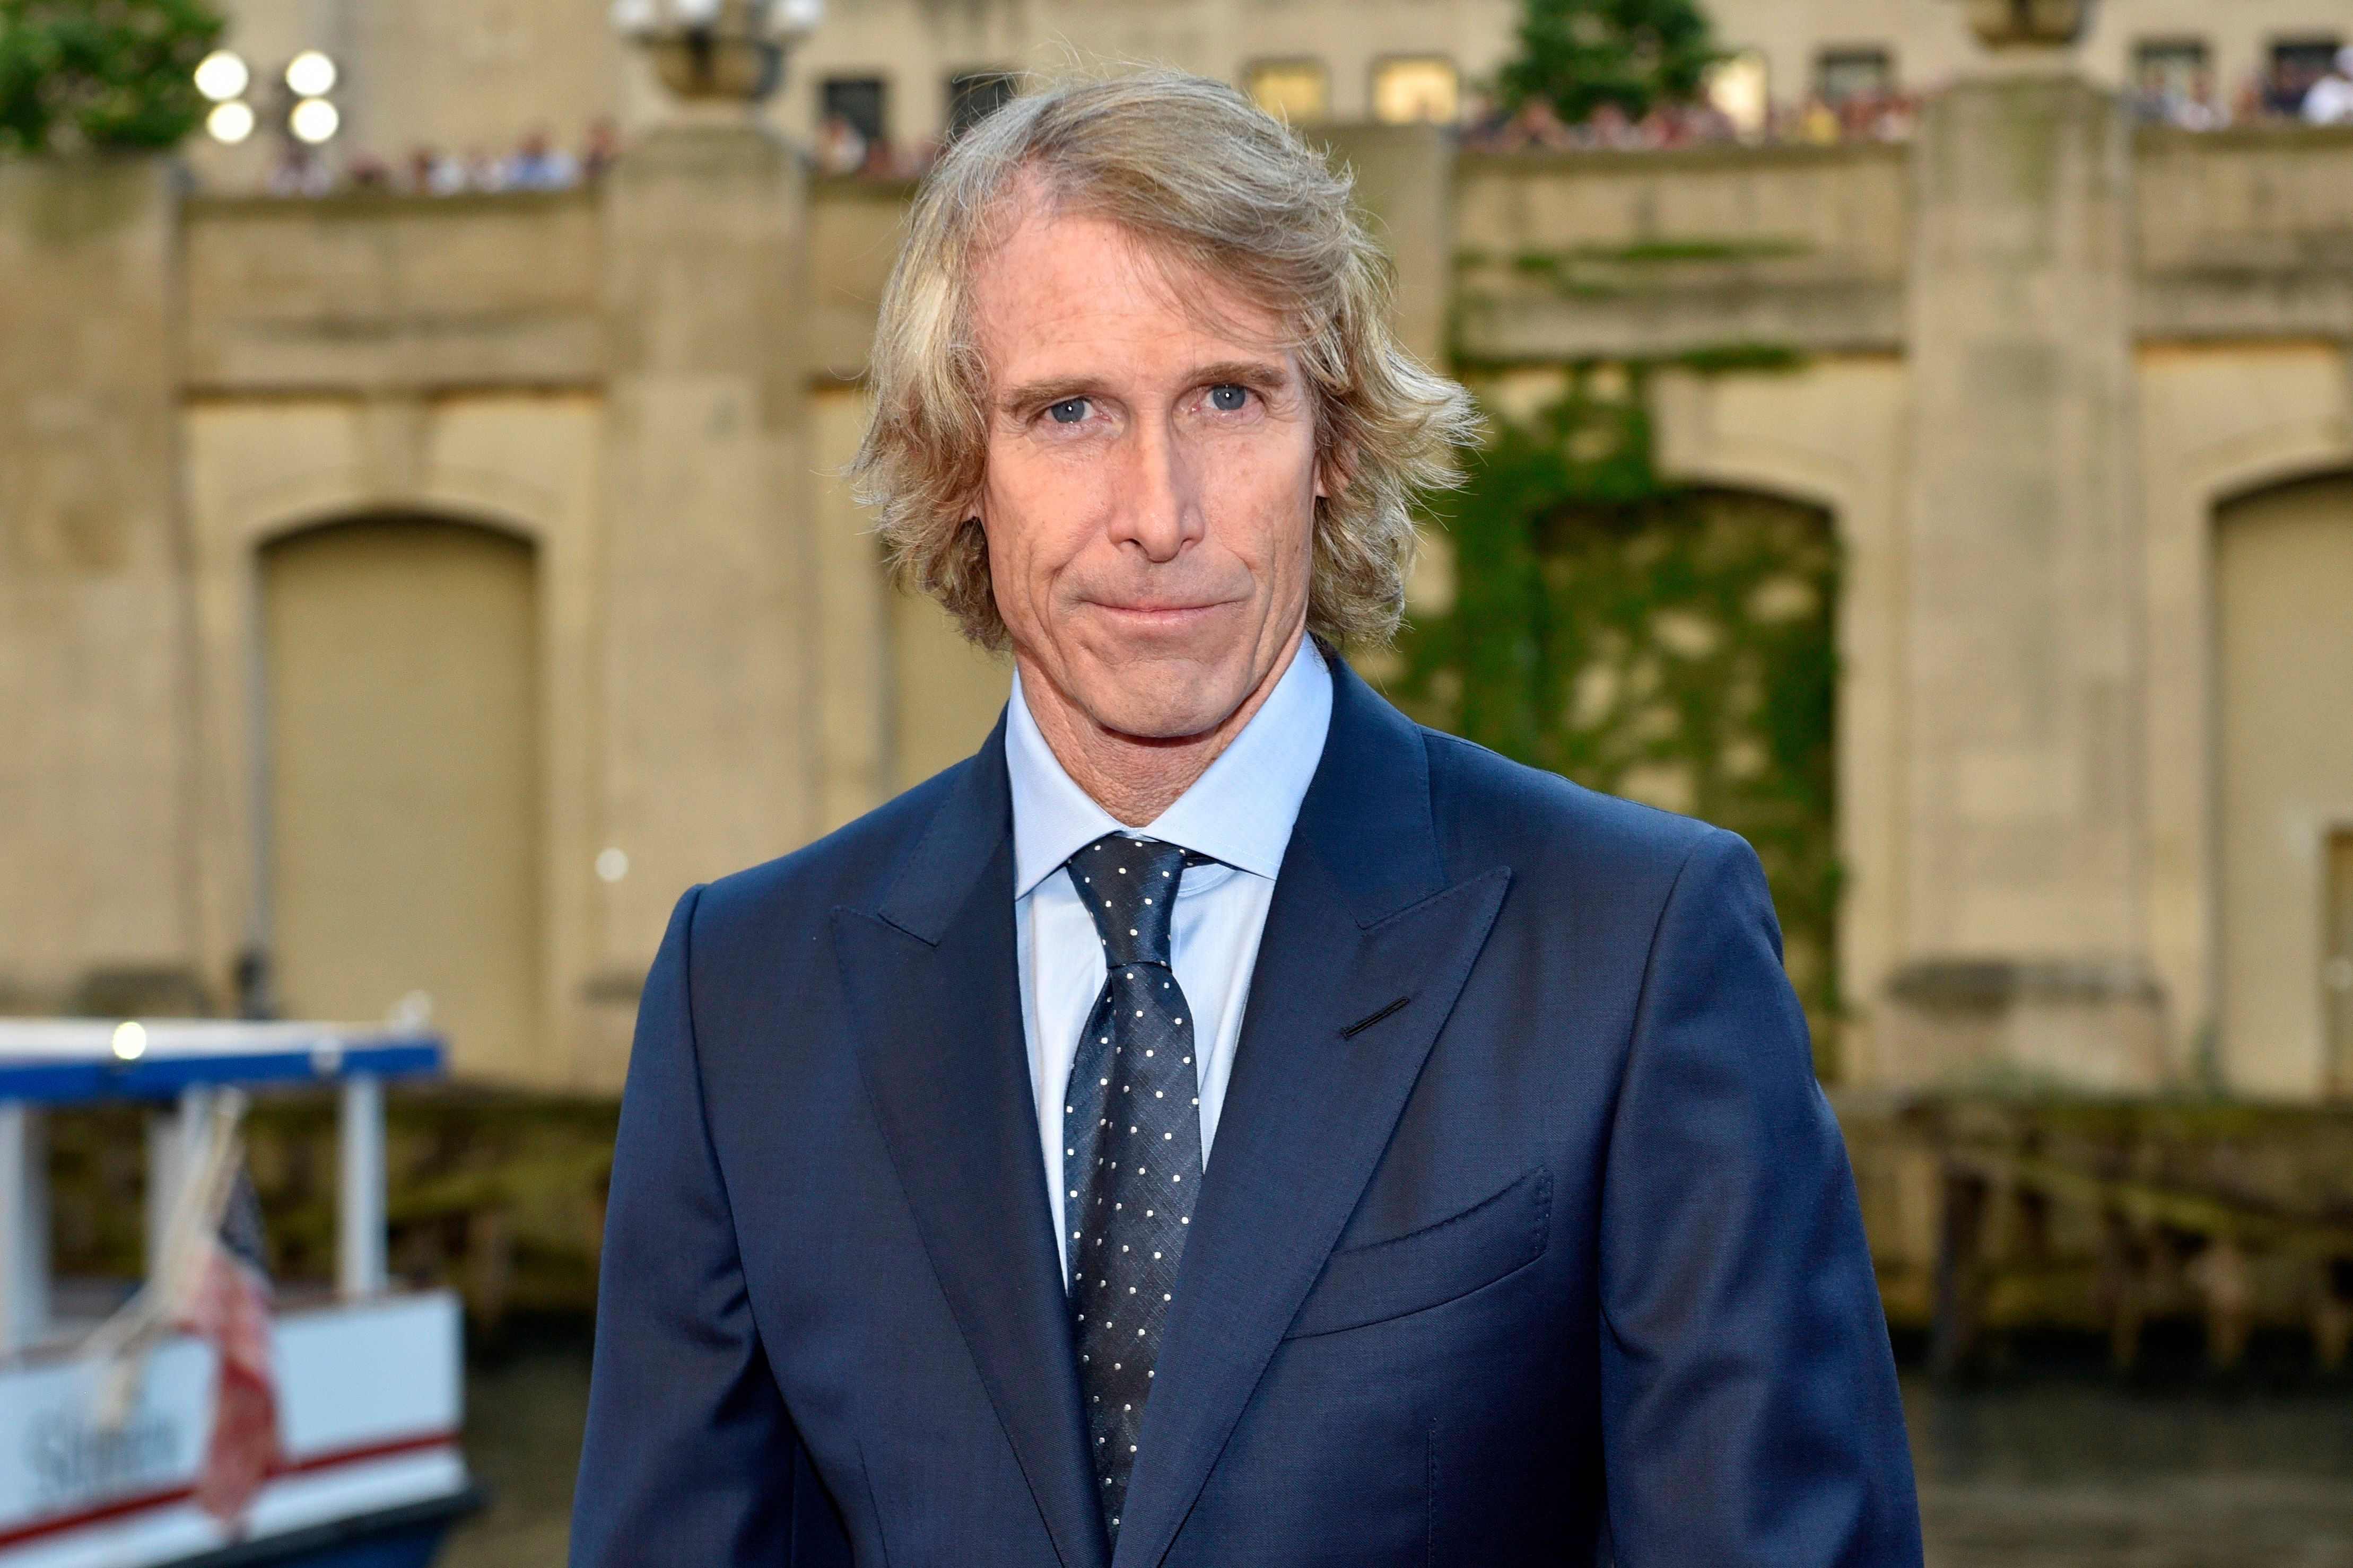 """Mandatory Credit: Photo by Invision/AP/Shutterstock (9242097br) Michael Bay attends the U.S. premiere of """"Transformers: The Last Knight"""" at the Civic Opera House, in Chicago US Premiere of """"Transformers: The Last Knight"""", Chicago, USA - 20 Jun 2017"""